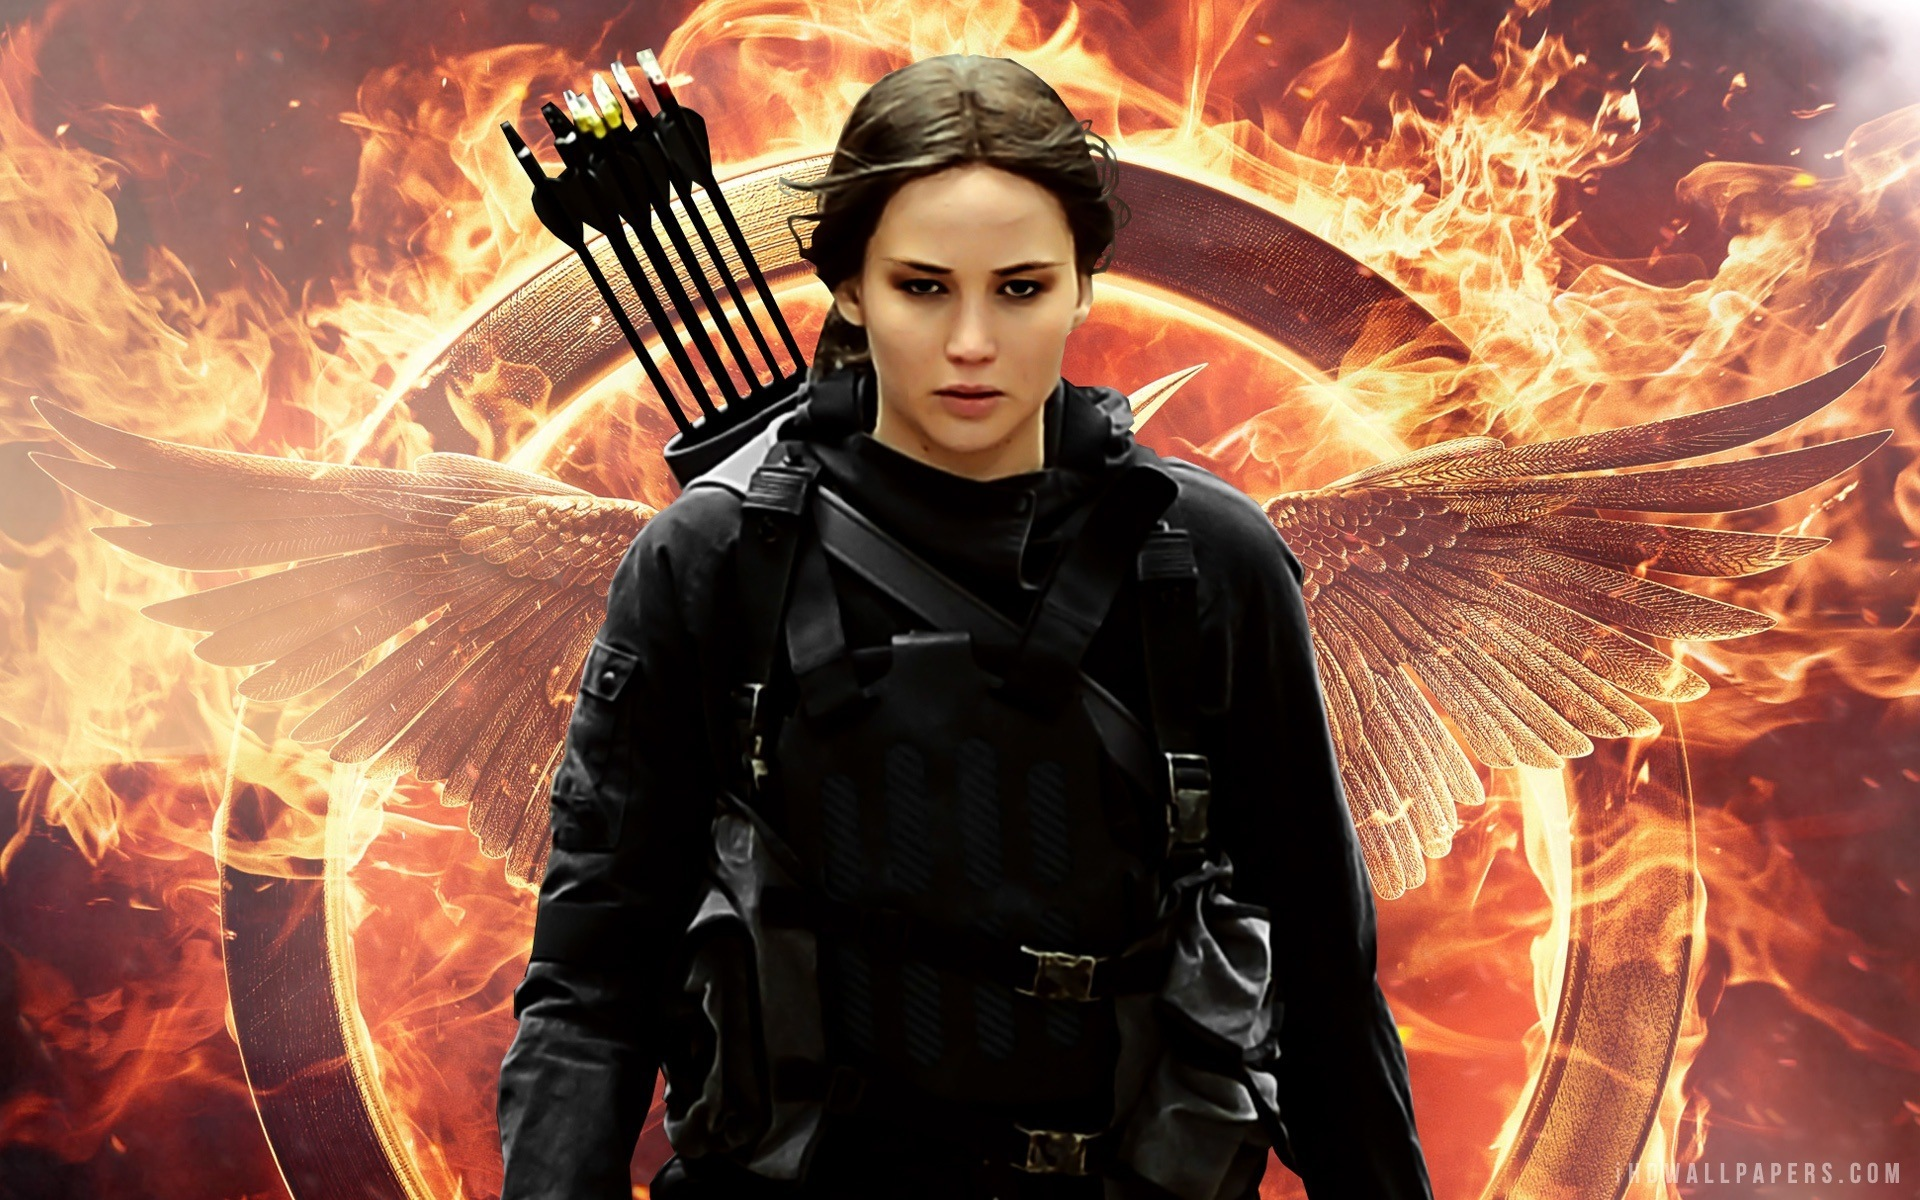 THE HUNGER GAMES MOCKINGJAY Part 2 Ends Series Run On IMAX 3D